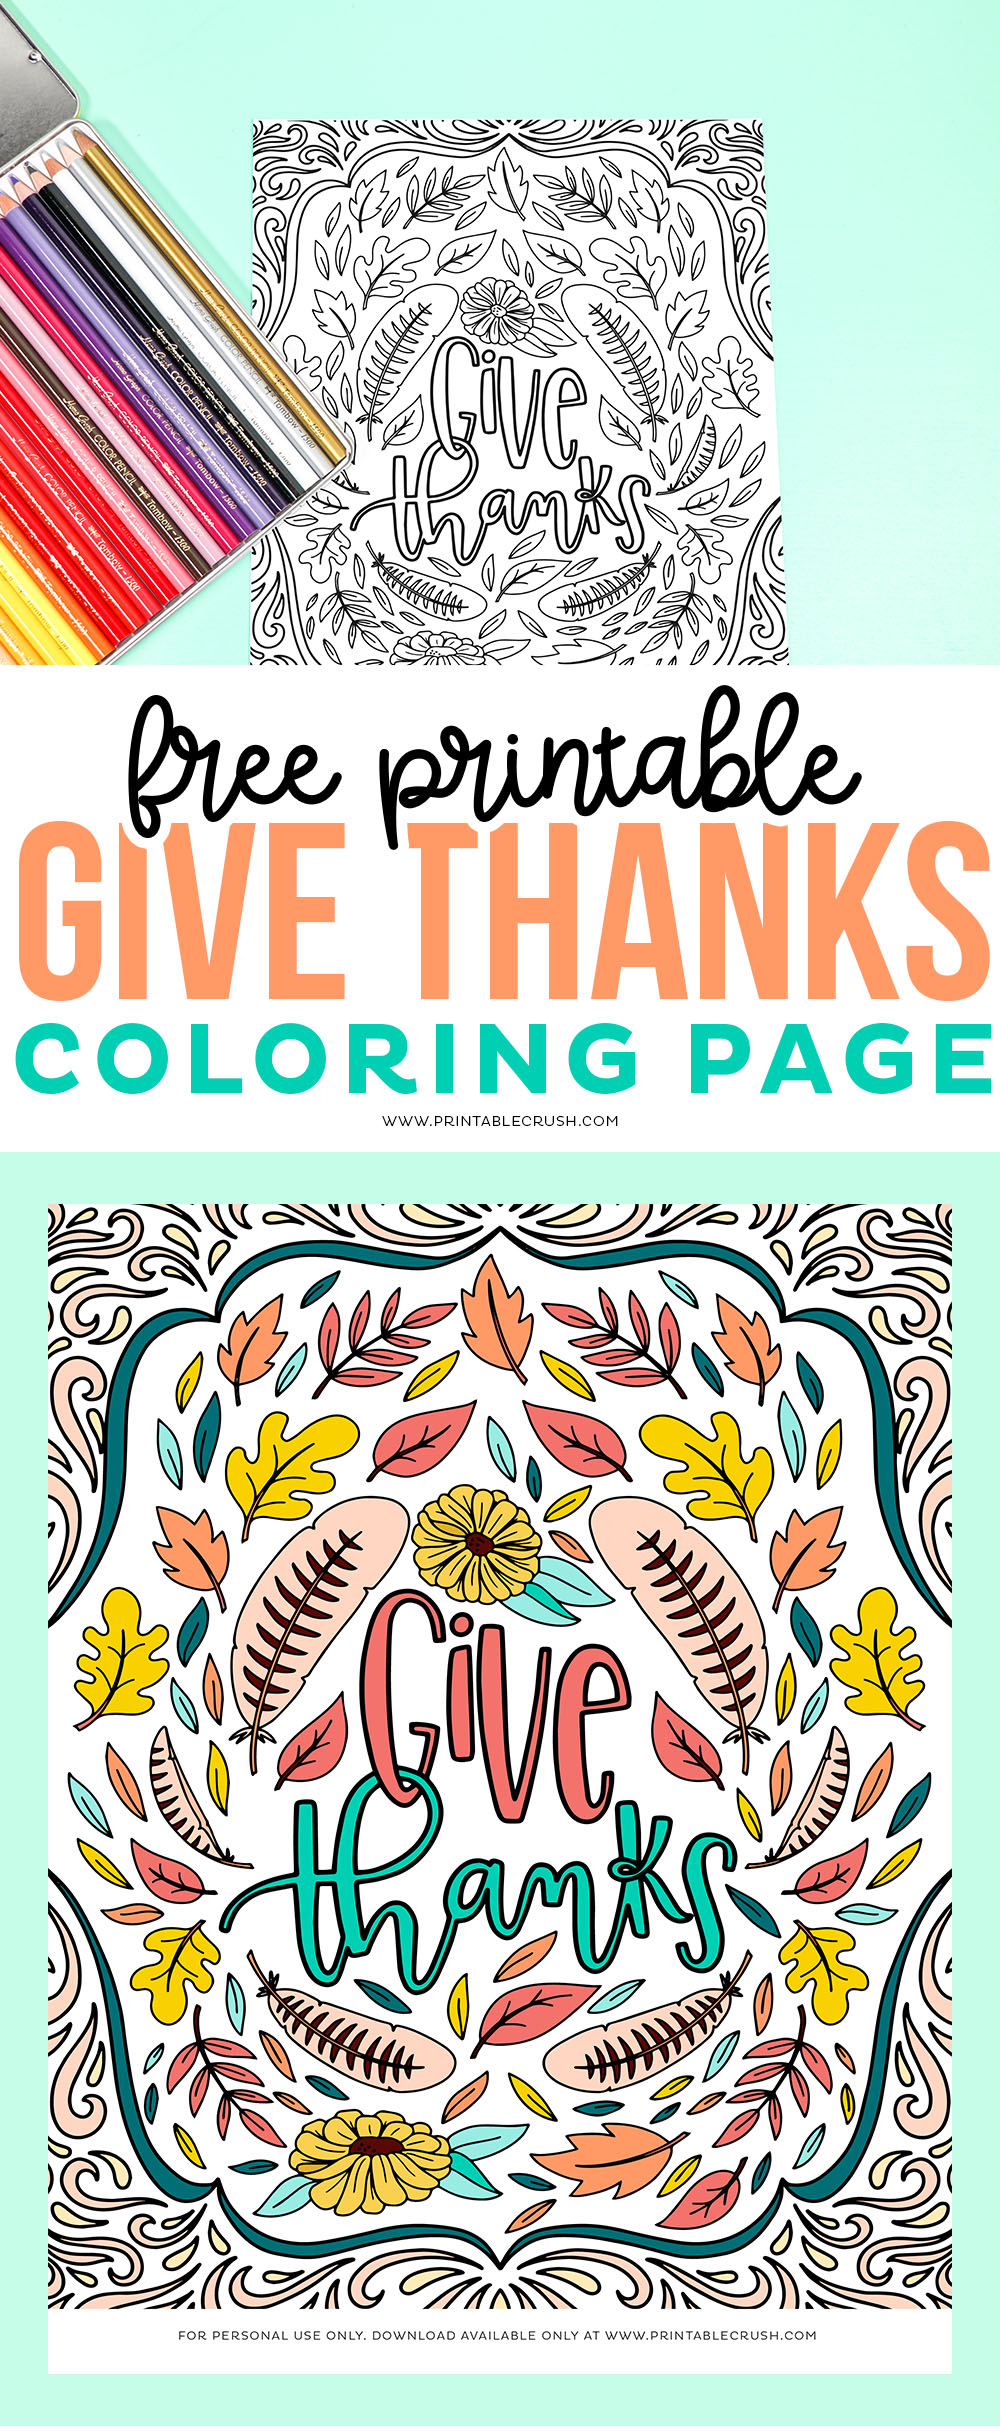 Give Thanks Free Printable Coloring Page - Printable Crush